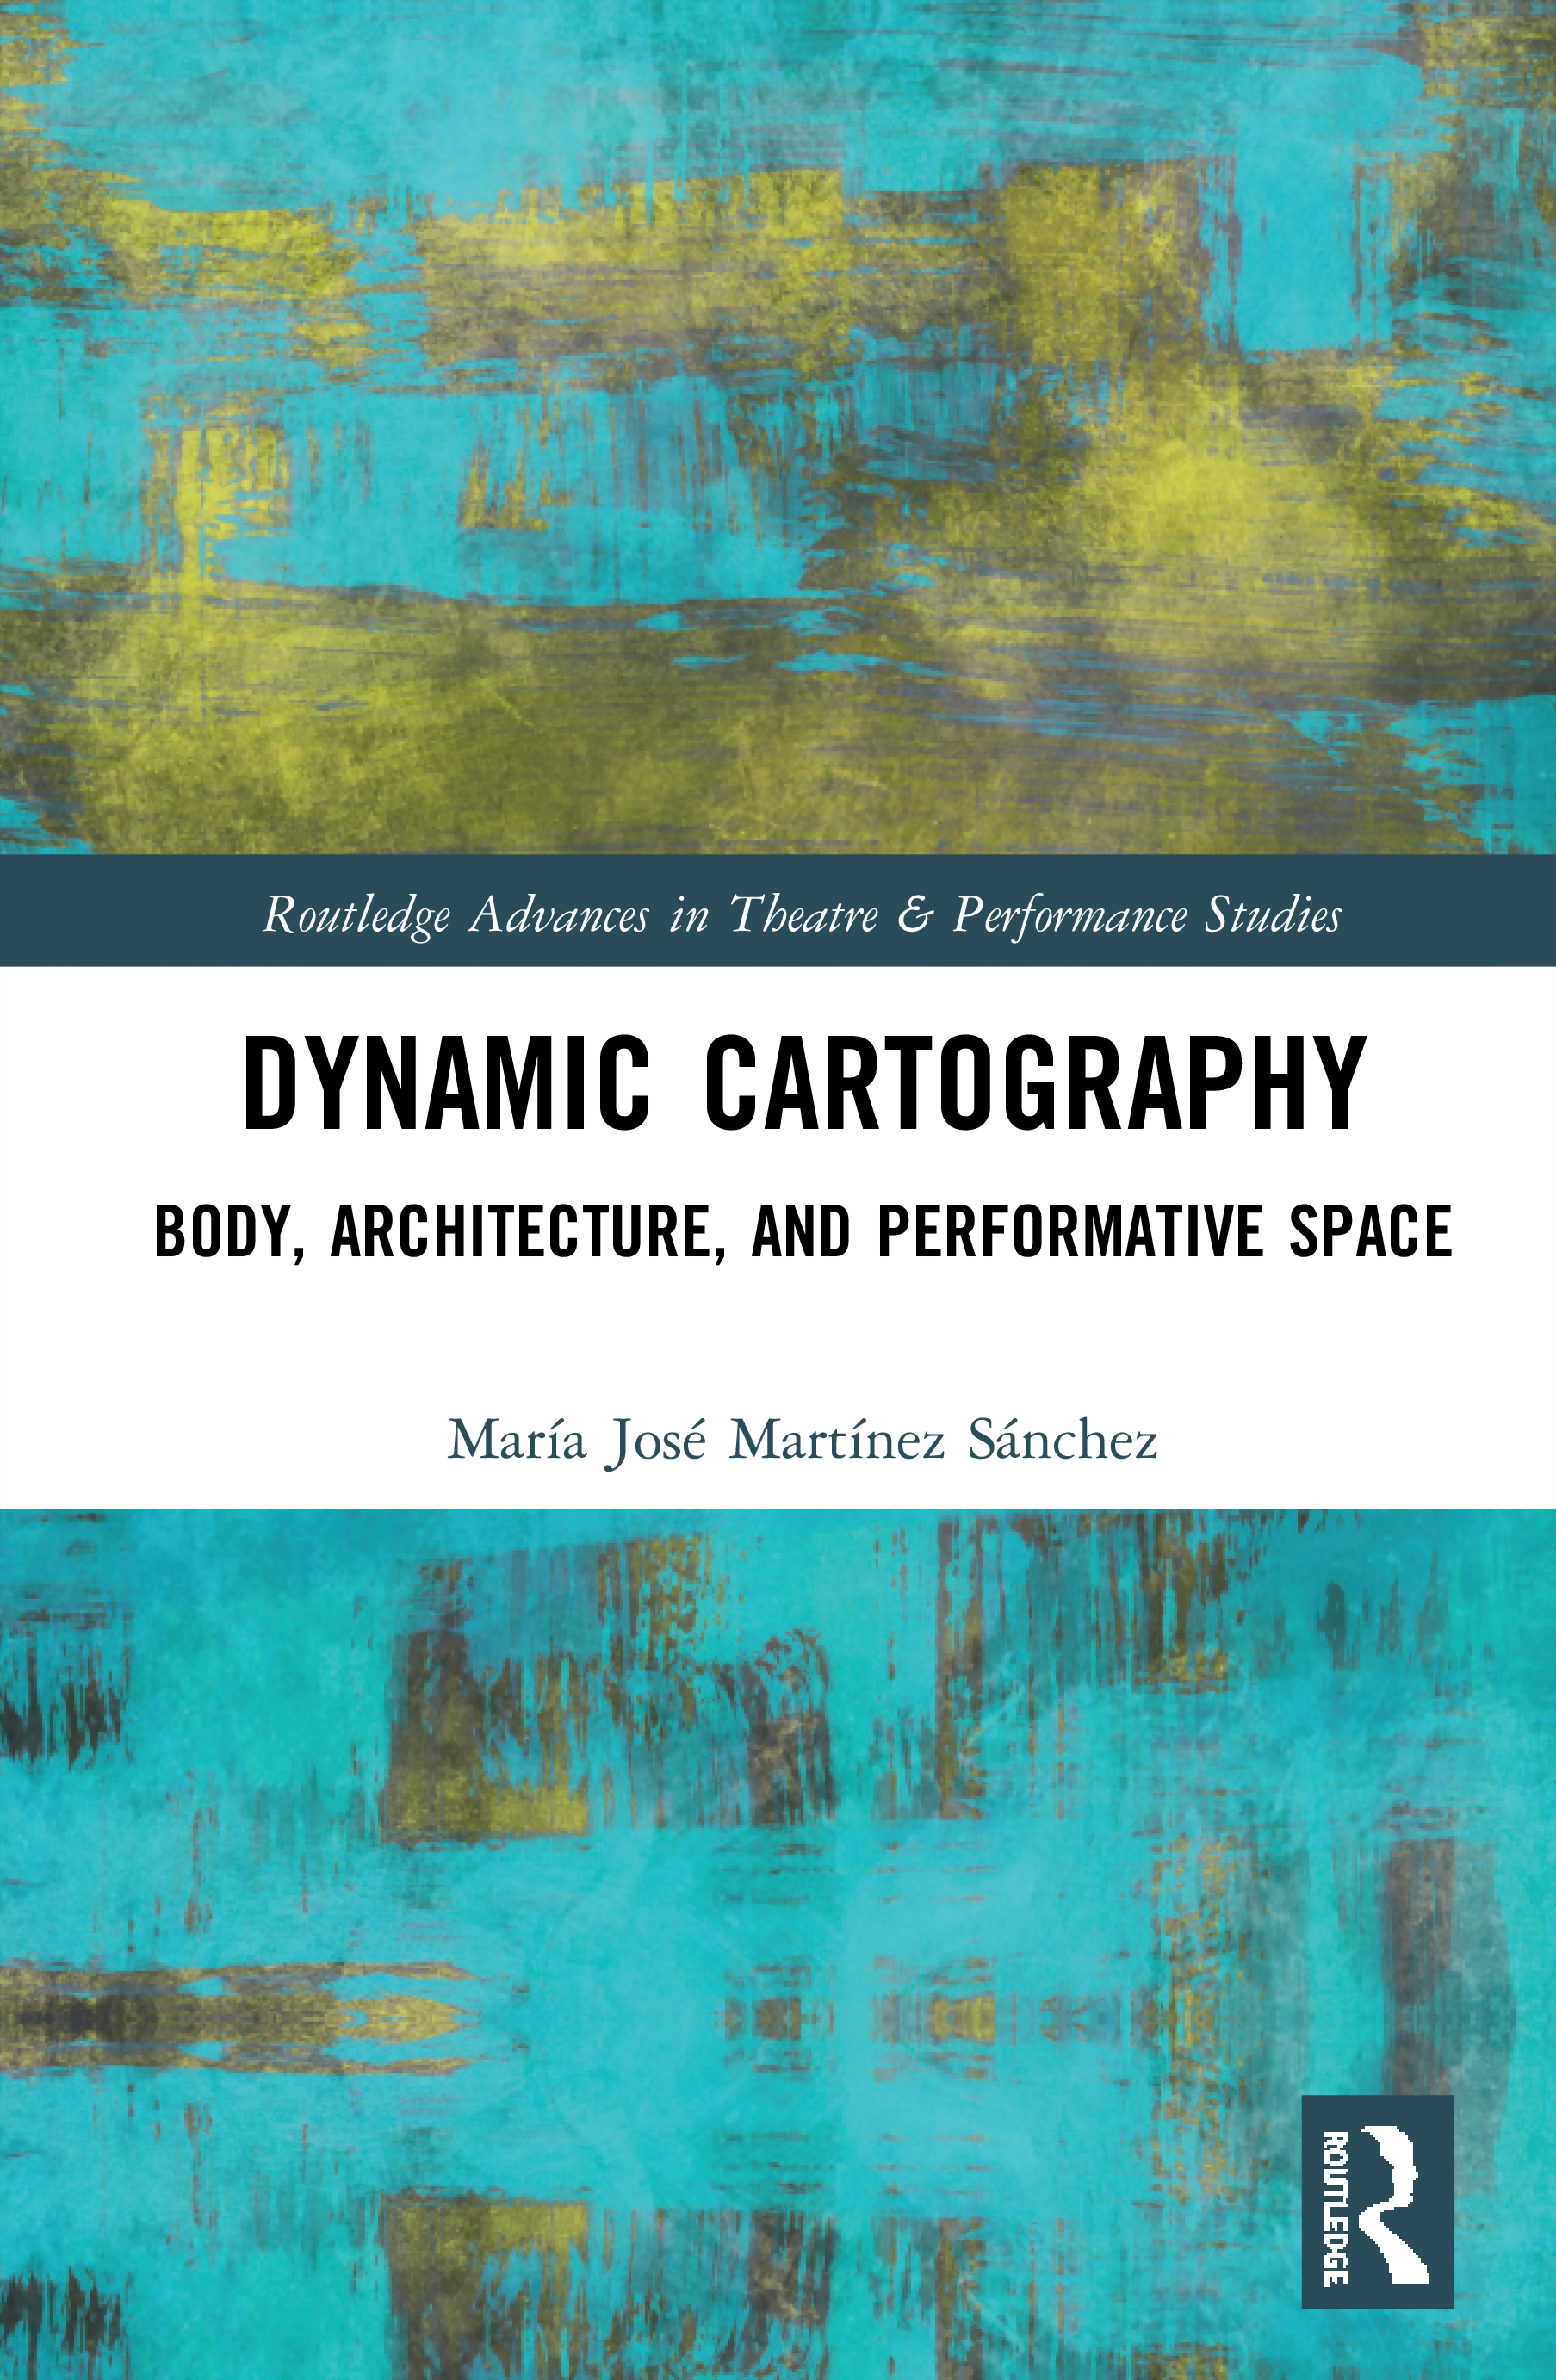 Dynamic Cartography: Body, Architecture, and Performative Space book cover